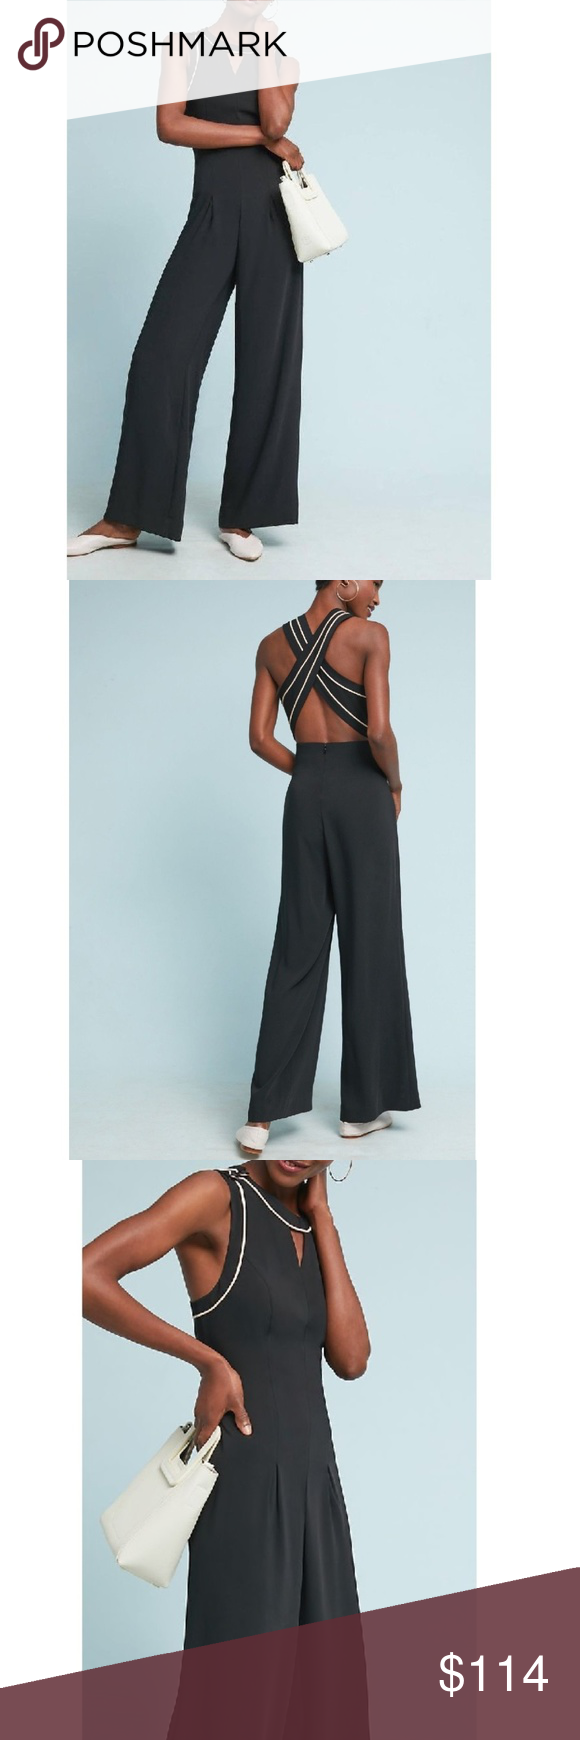 e344d908710a Anthropologie Whitney Tailored Jumpsuit  158 Sz 0 New With Tag  Anthropologie Whitney Tailored Jumpsuit Sz 0